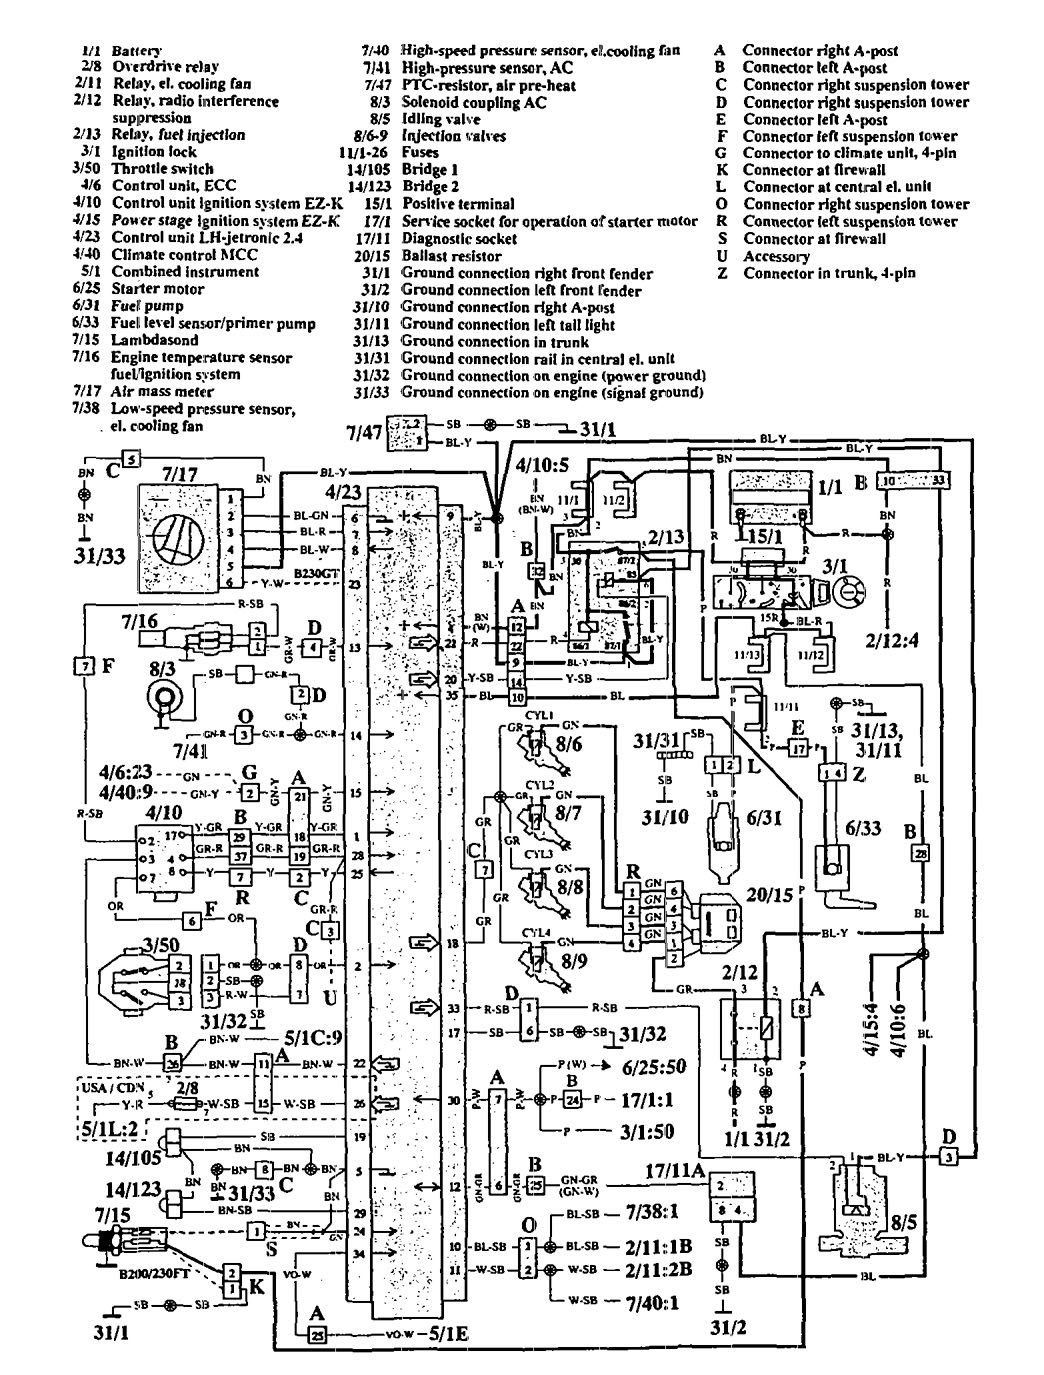 volvo 940 wiring diagram fuel controls v2 2 1992 volvo 940 (1992) wiring diagrams fuel controls carknowledge 1992 volvo 960 radio wiring diagram at creativeand.co